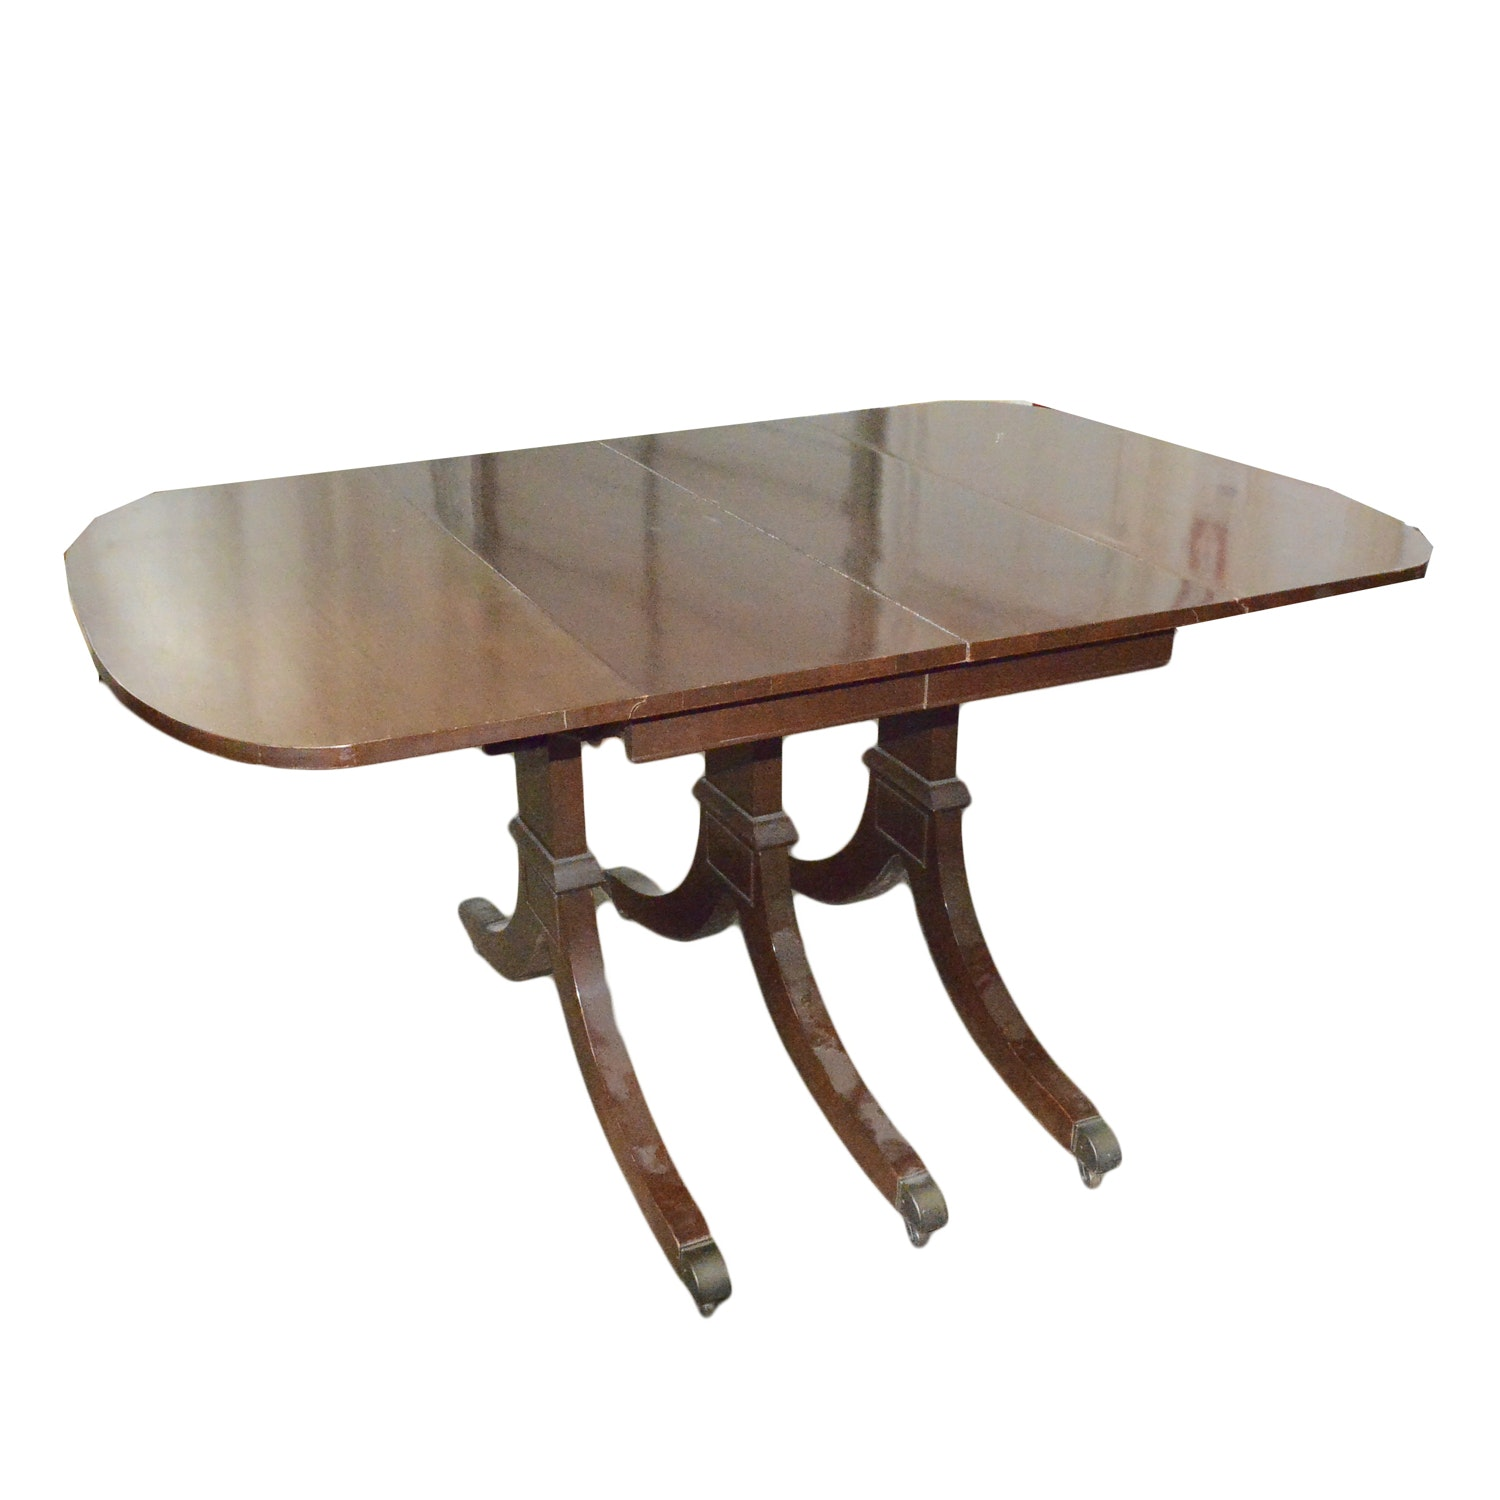 Vintage Duncan Phyfe Style Mahogany Drop Leaf Dining Table By Craddock ...